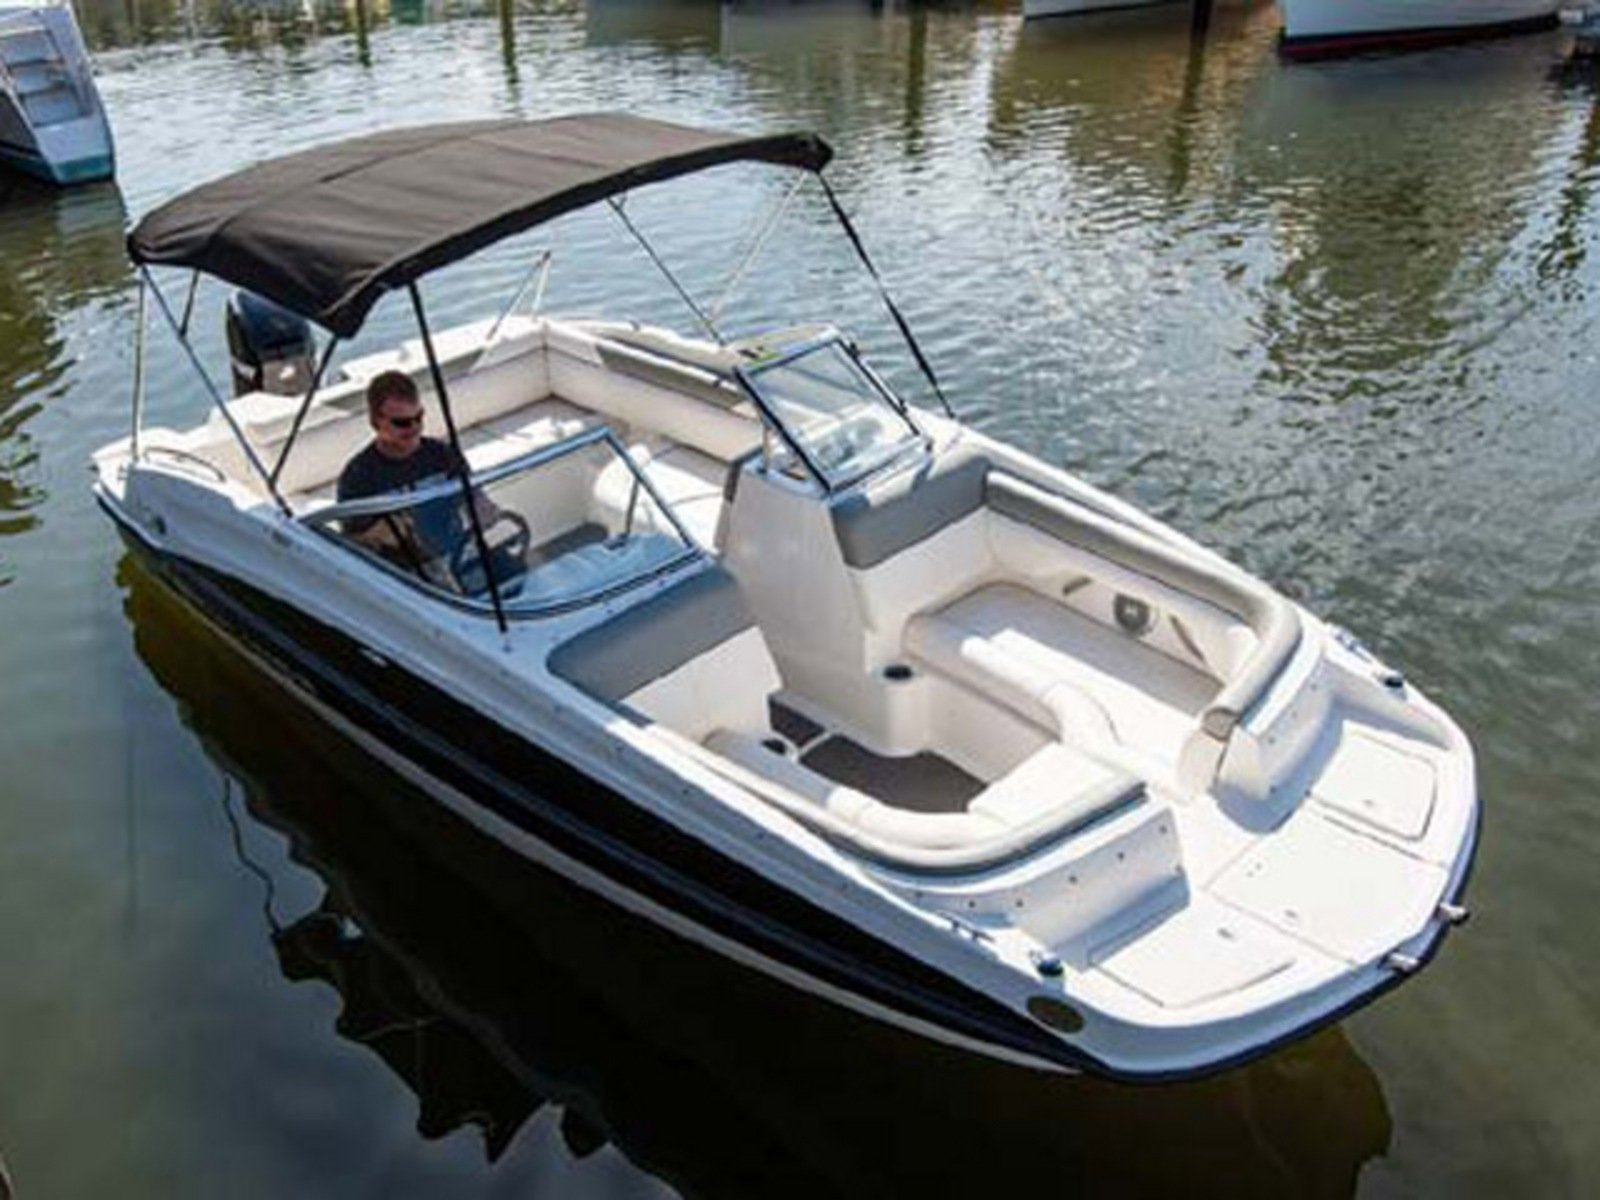 2014 Bayliner 190 Deck Boat Review - Top Speed